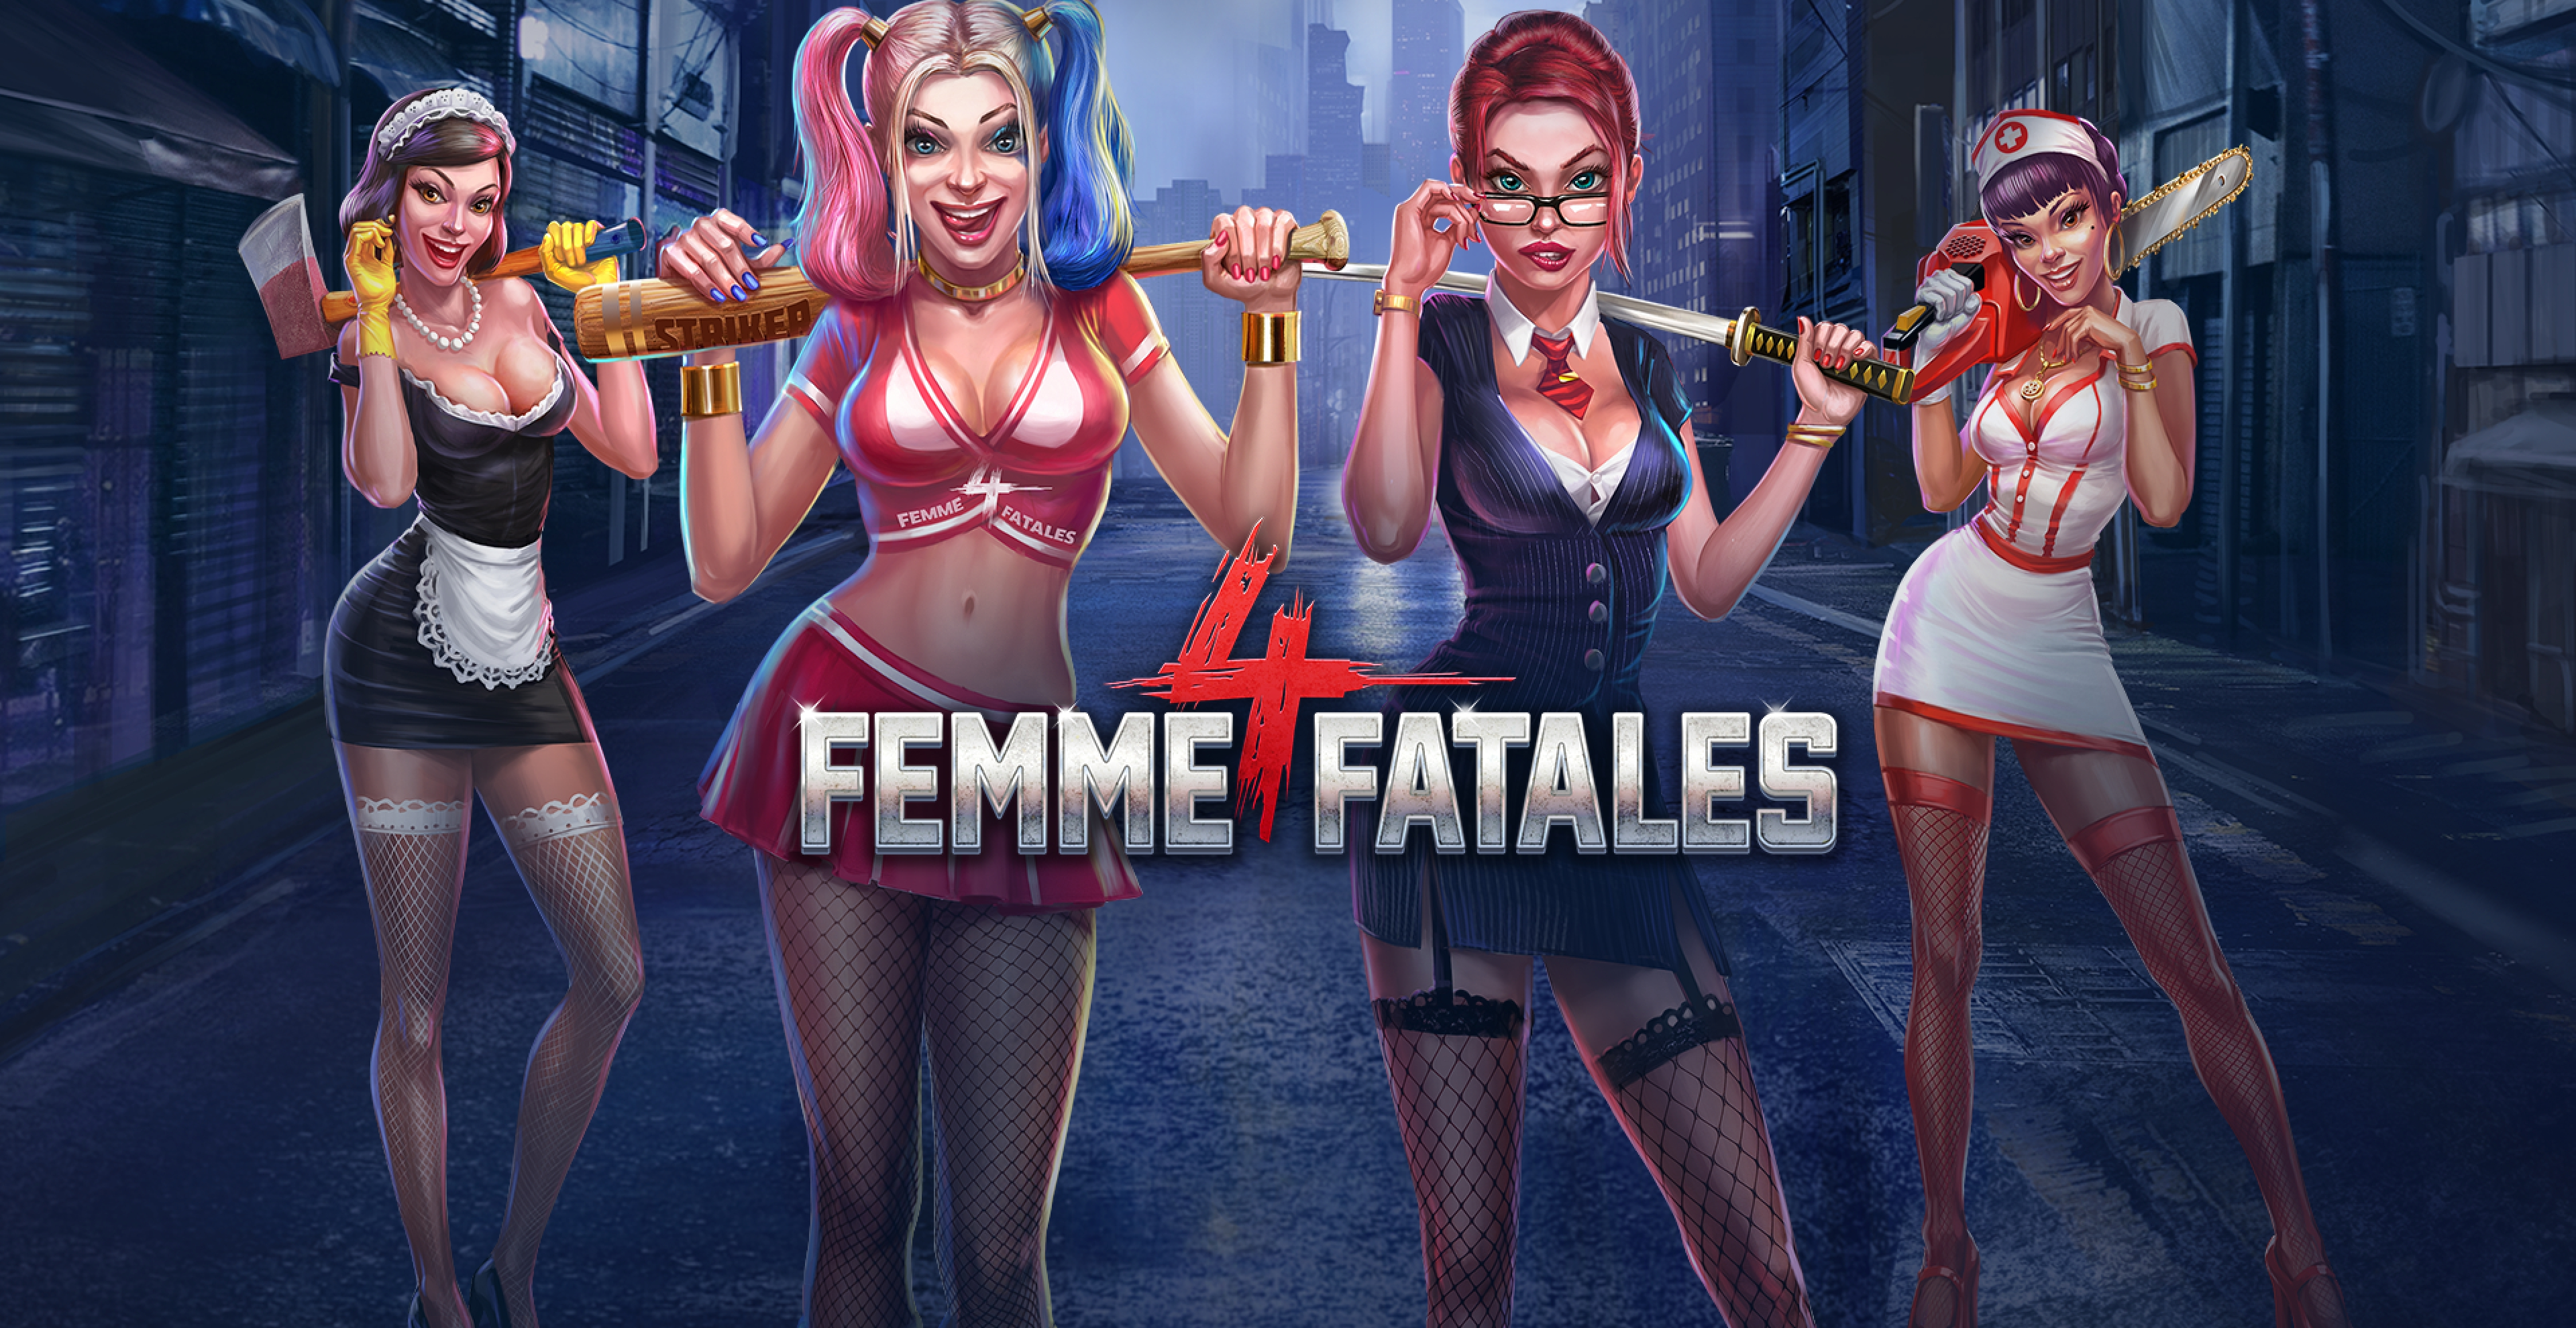 Win Money in Four Femme Fatales Free Slot Game by Skywind